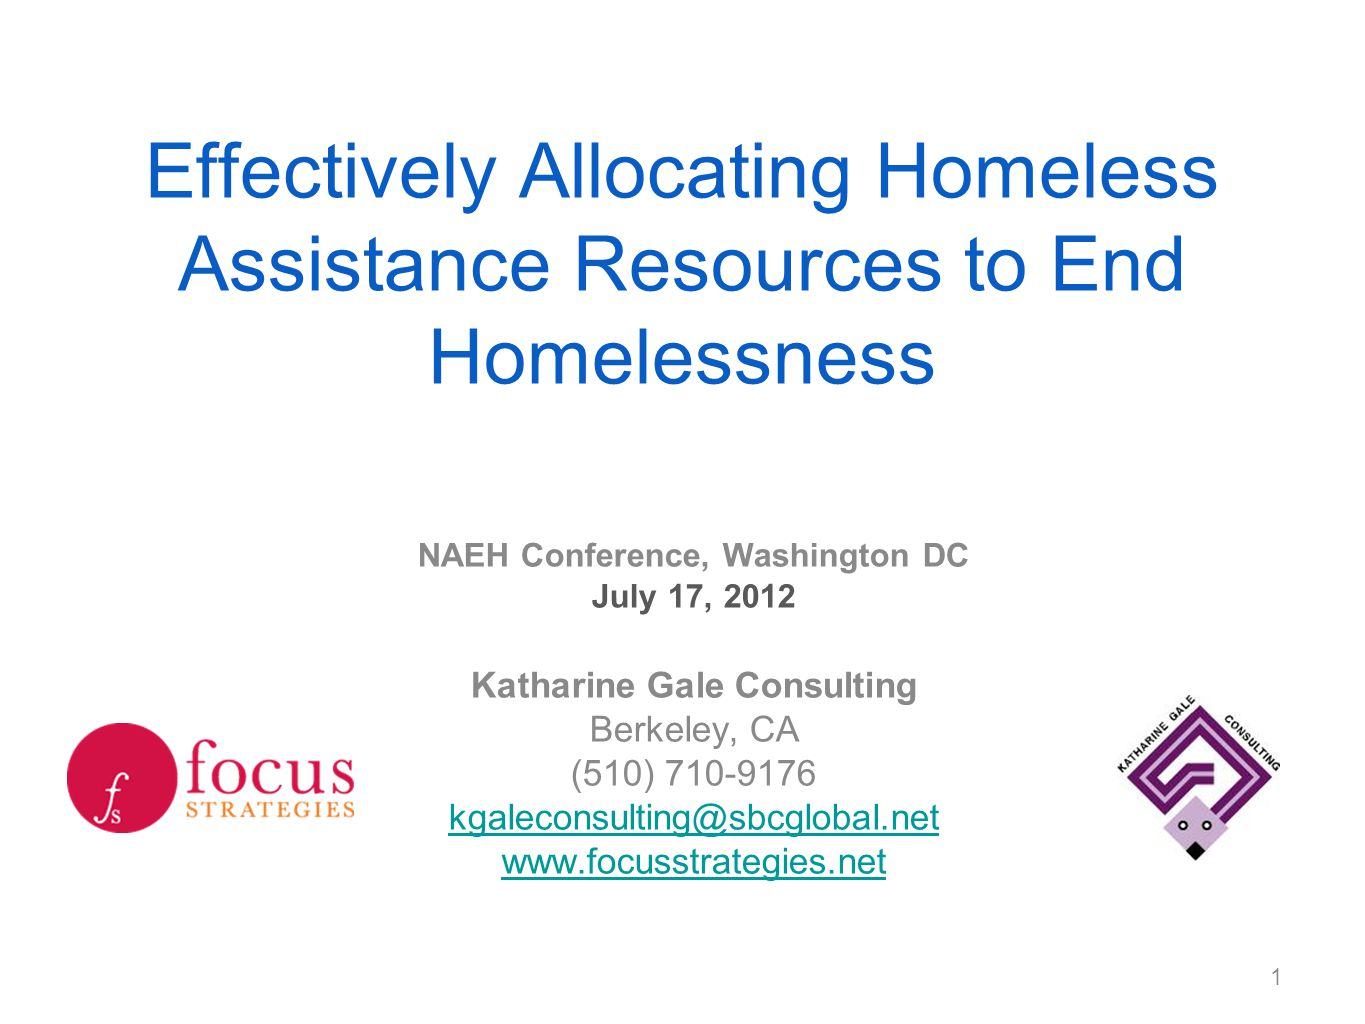 Effectively Allocating Homeless Assistance Resources to End Homelessness NAEH Conference, Washington DC July 17, 2012 Katharine Gale Consulting Berkeley, CA (510) 710-9176 kgaleconsulting@sbcglobal.net www.focusstrategies.net 1